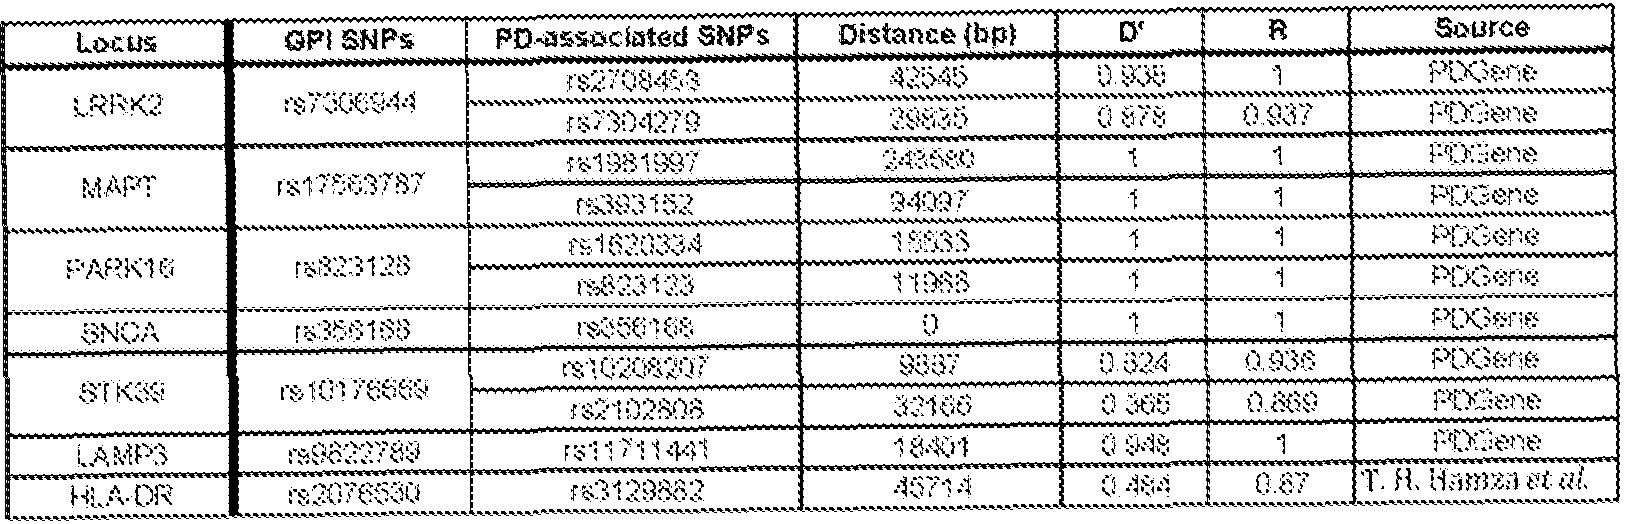 WO2014110481A2 - Rab7l1 interacts with lrrk2 to modify